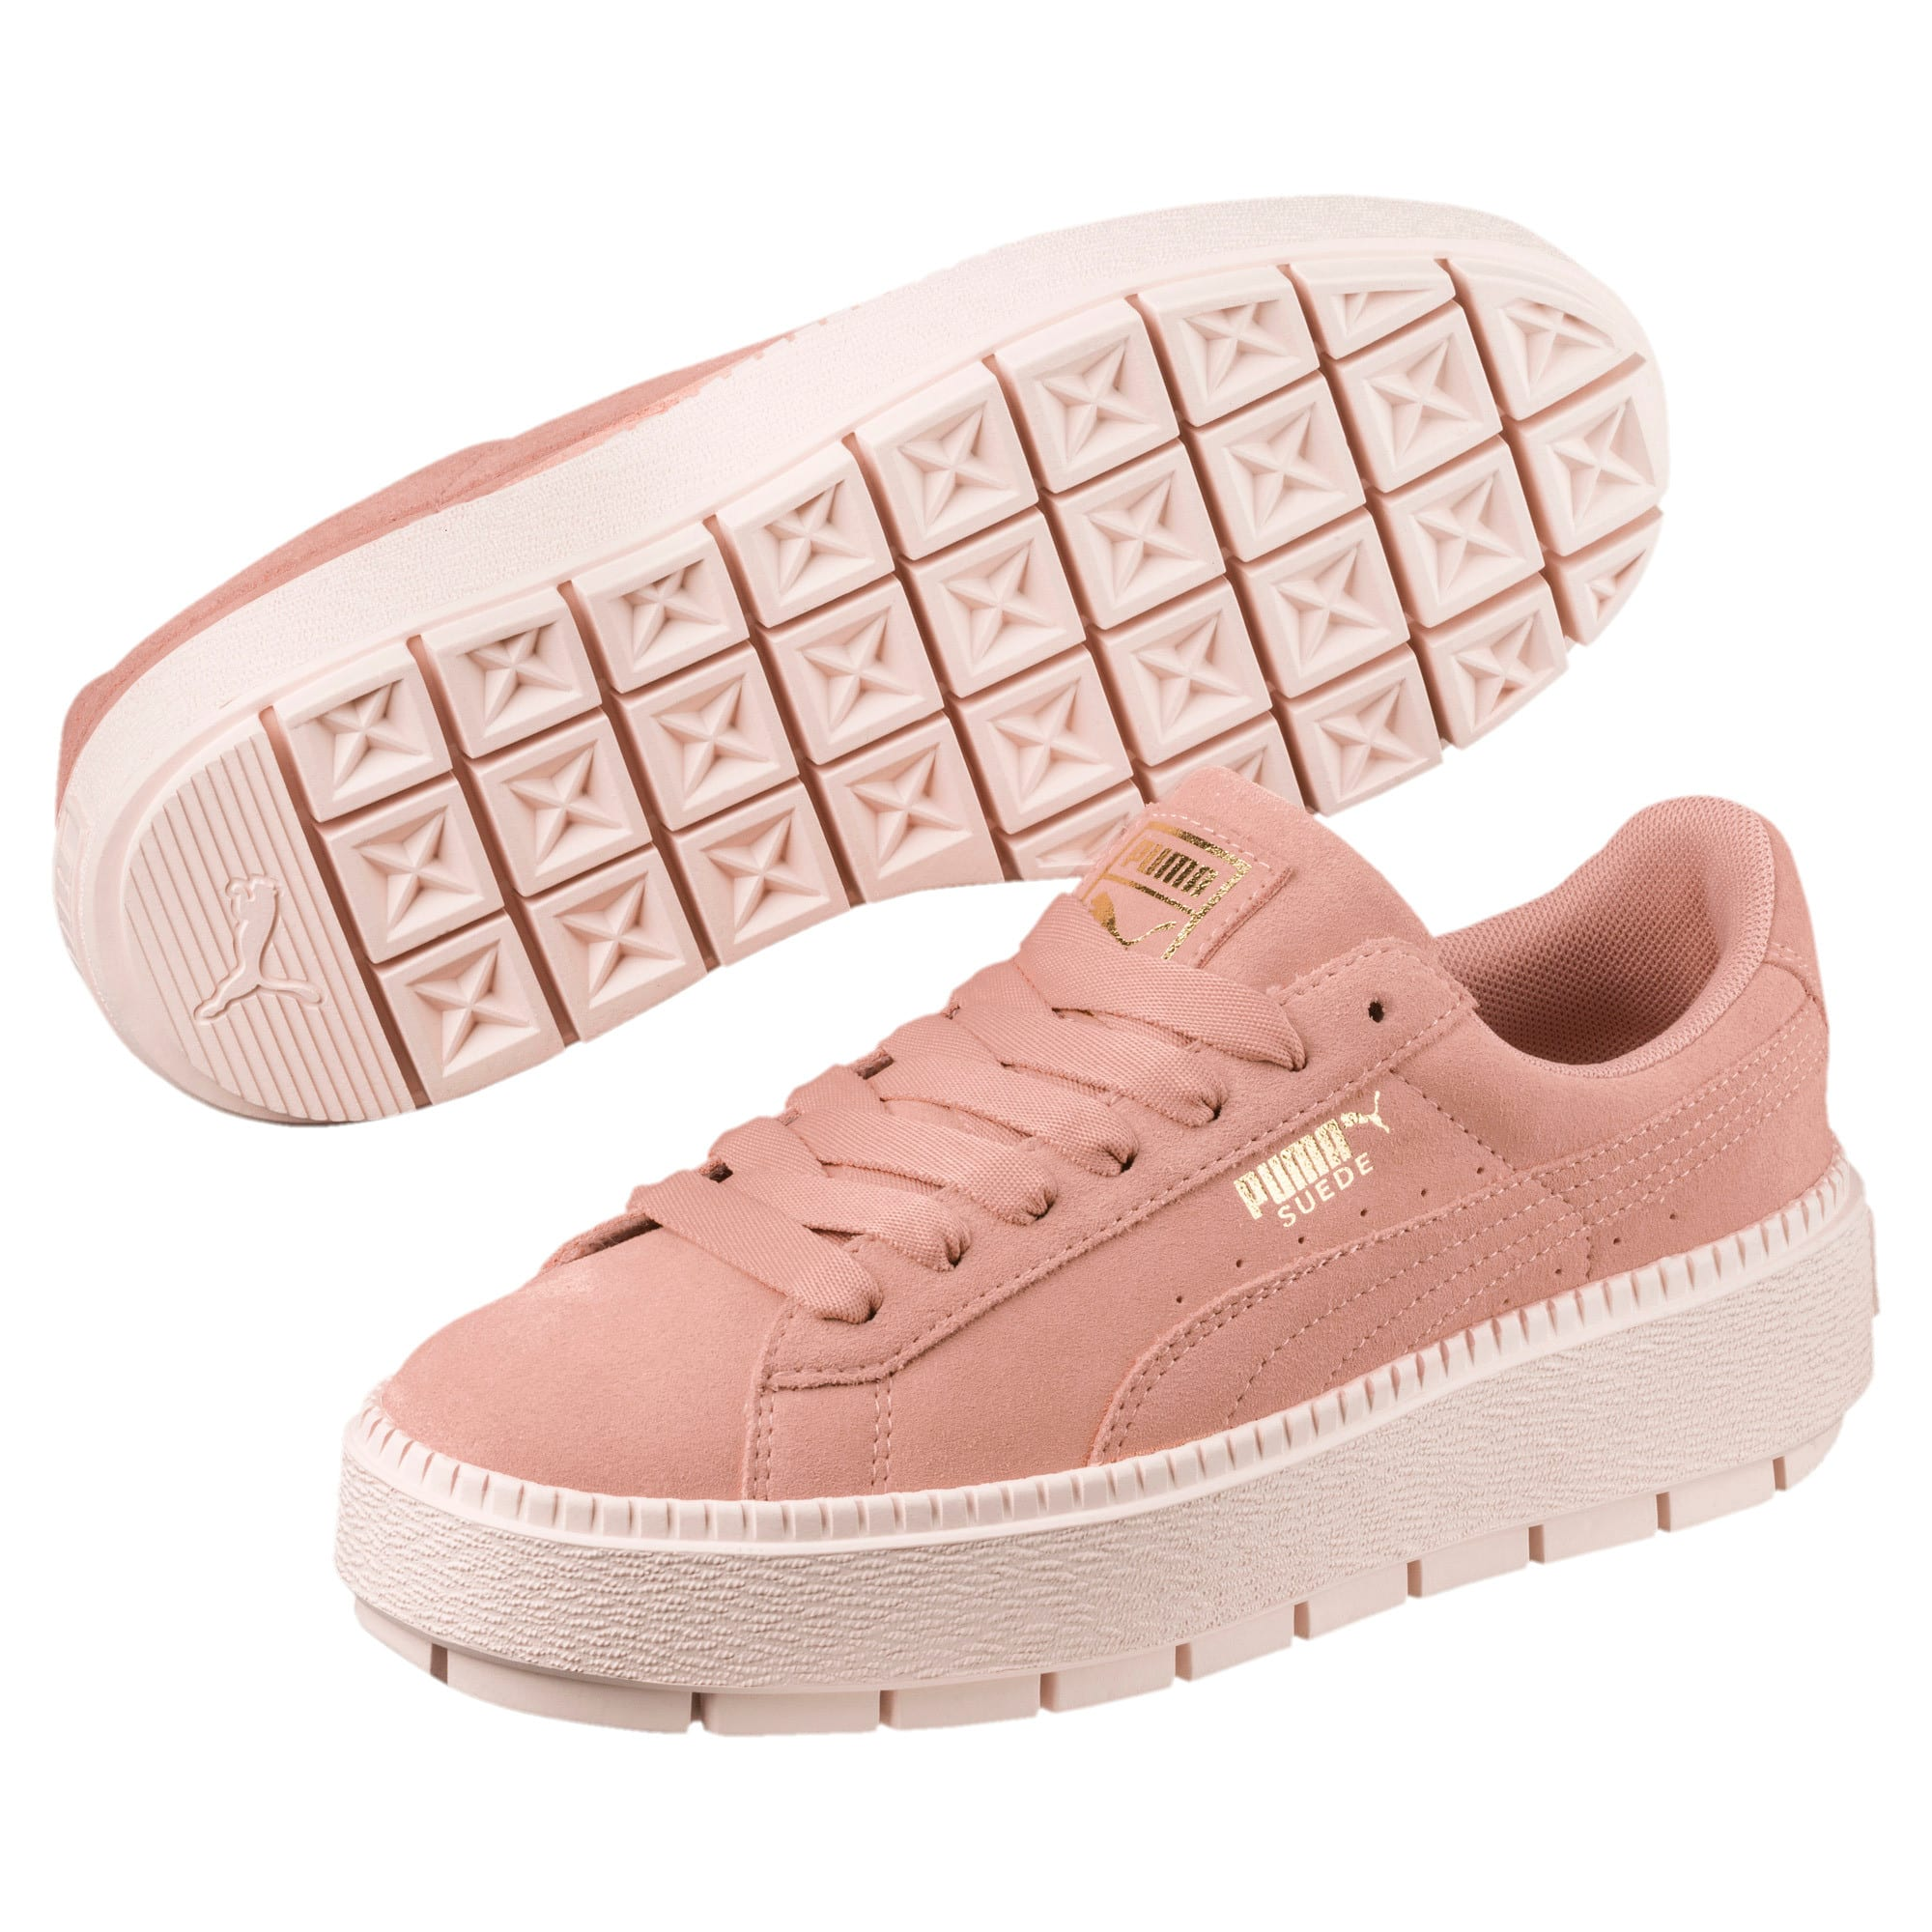 Thumbnail 2 of Platform Trace Women's Trainers, Peach Beige-Pearl, medium-IND